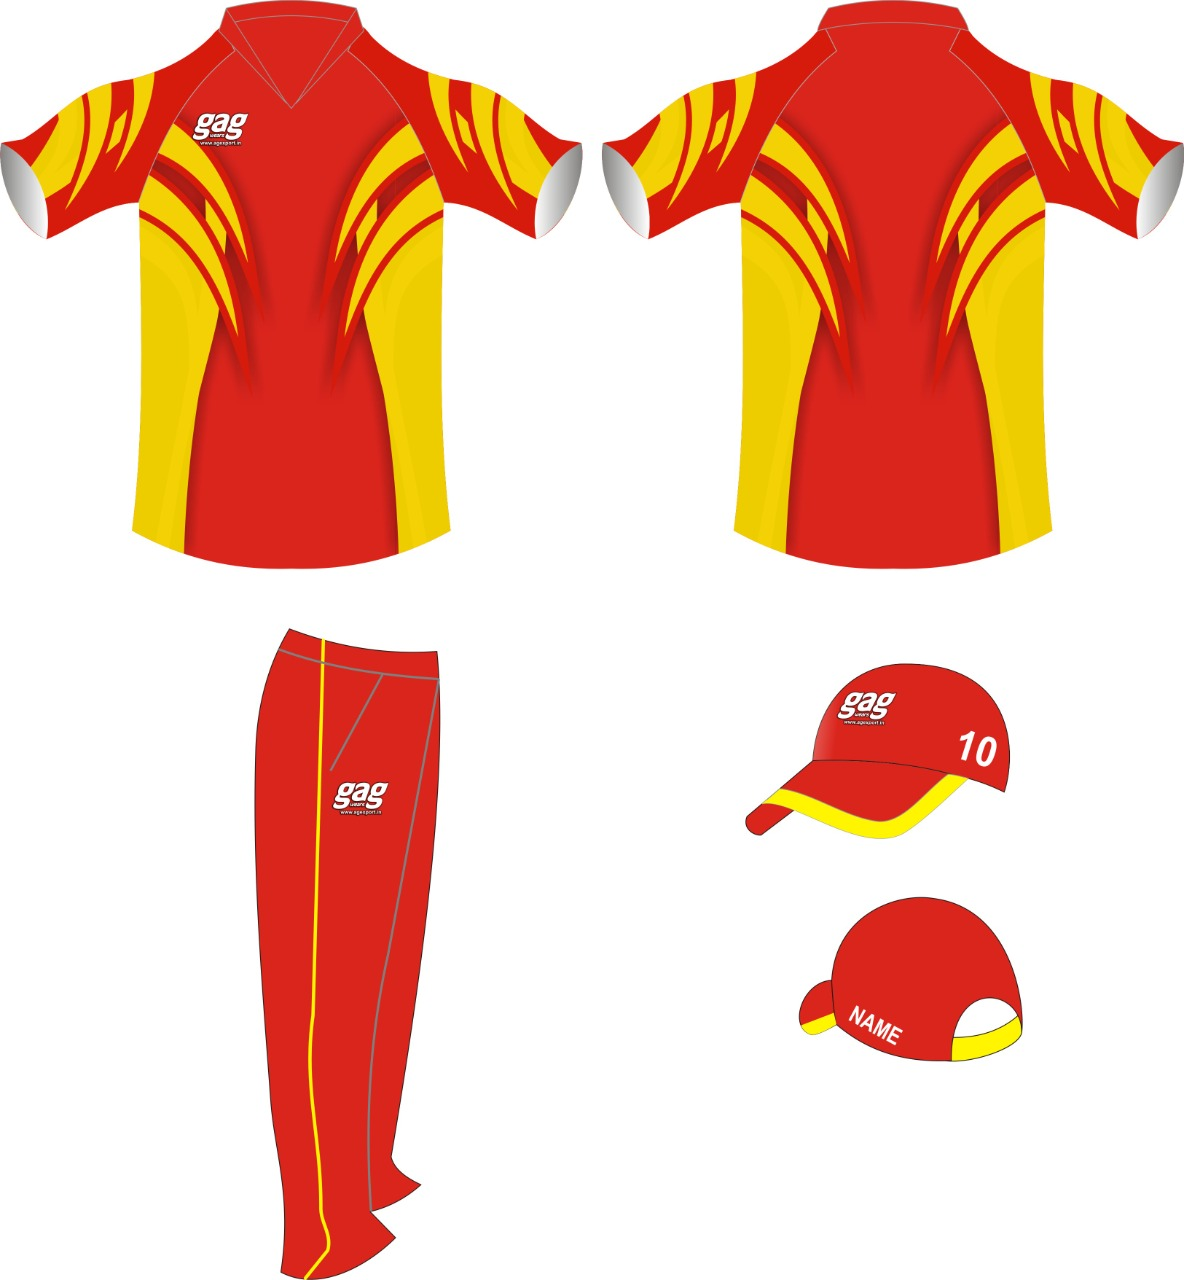 Sublimation Cricket Uniform Manufacturers in Jalandhar in Bahrain